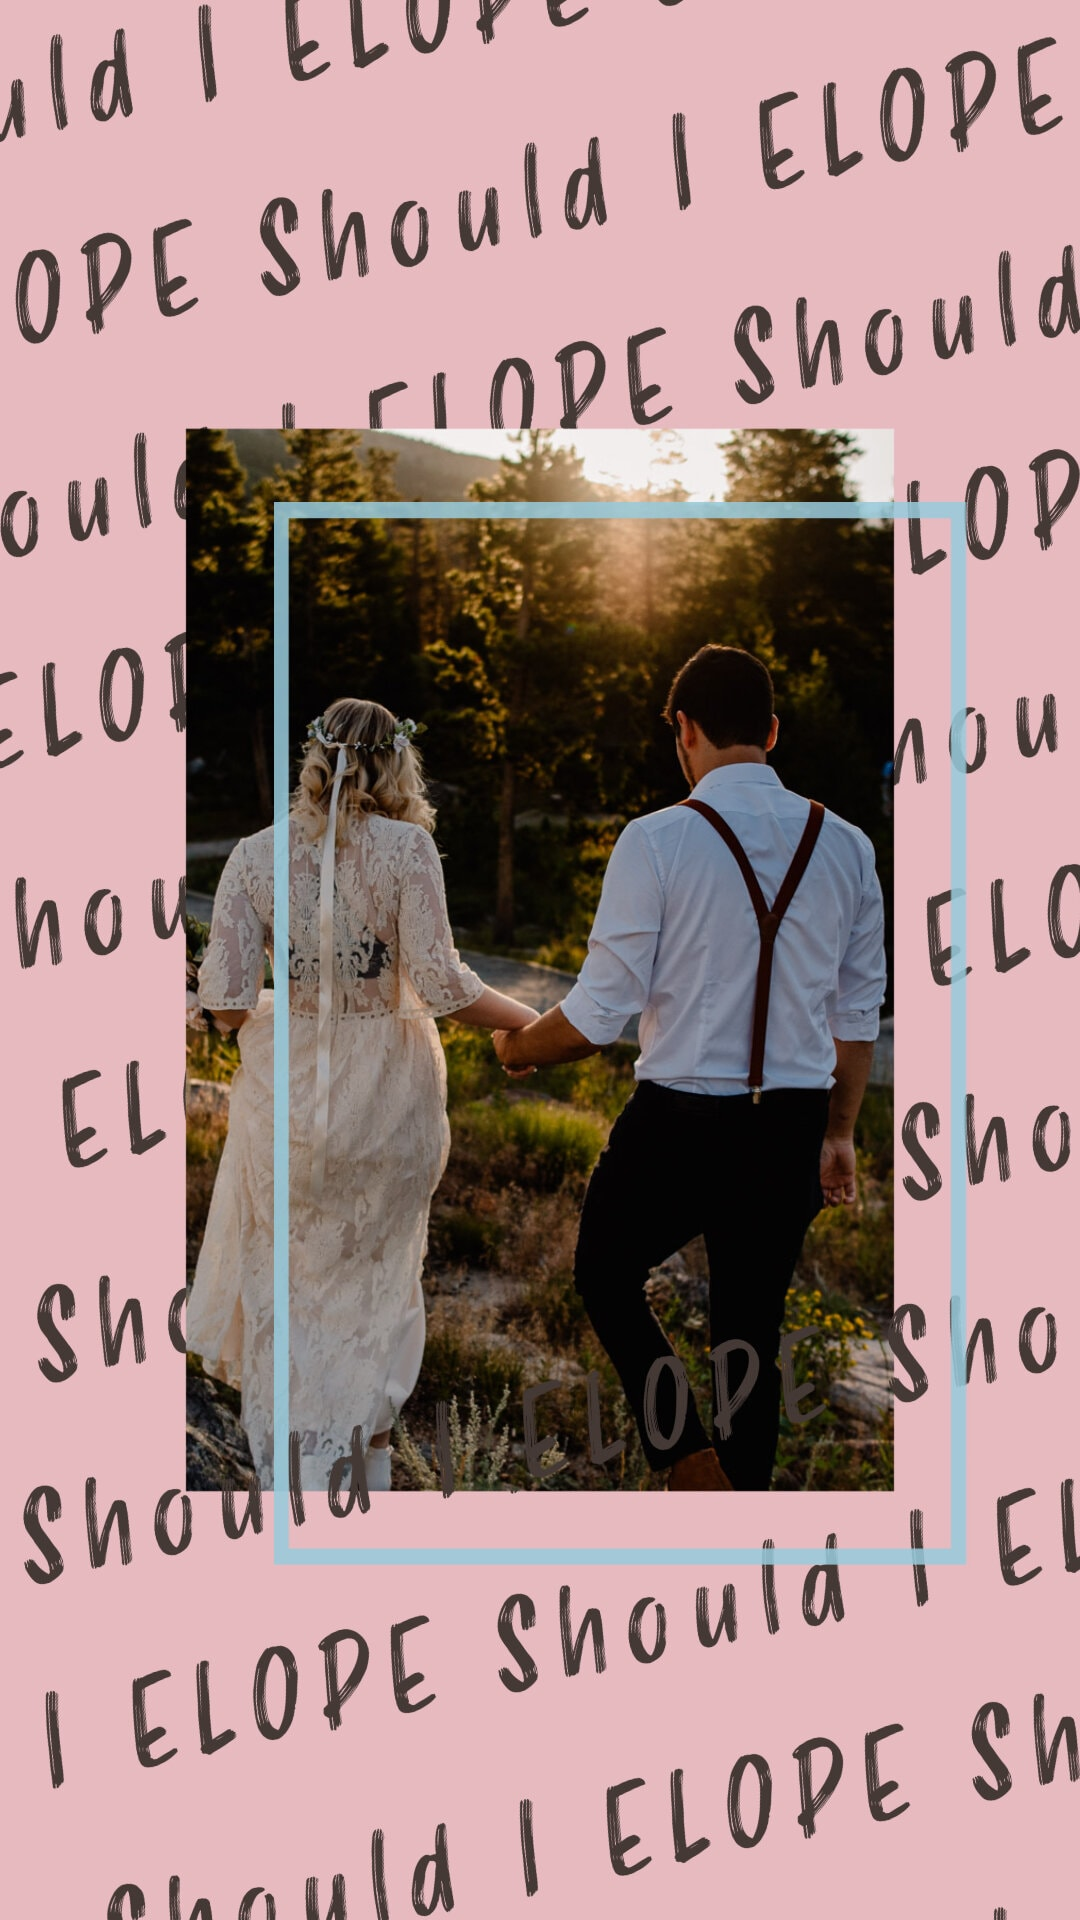 """should i elope"" ""should i elope quiz"" on text with photo of bride and groom walking away holding hands"